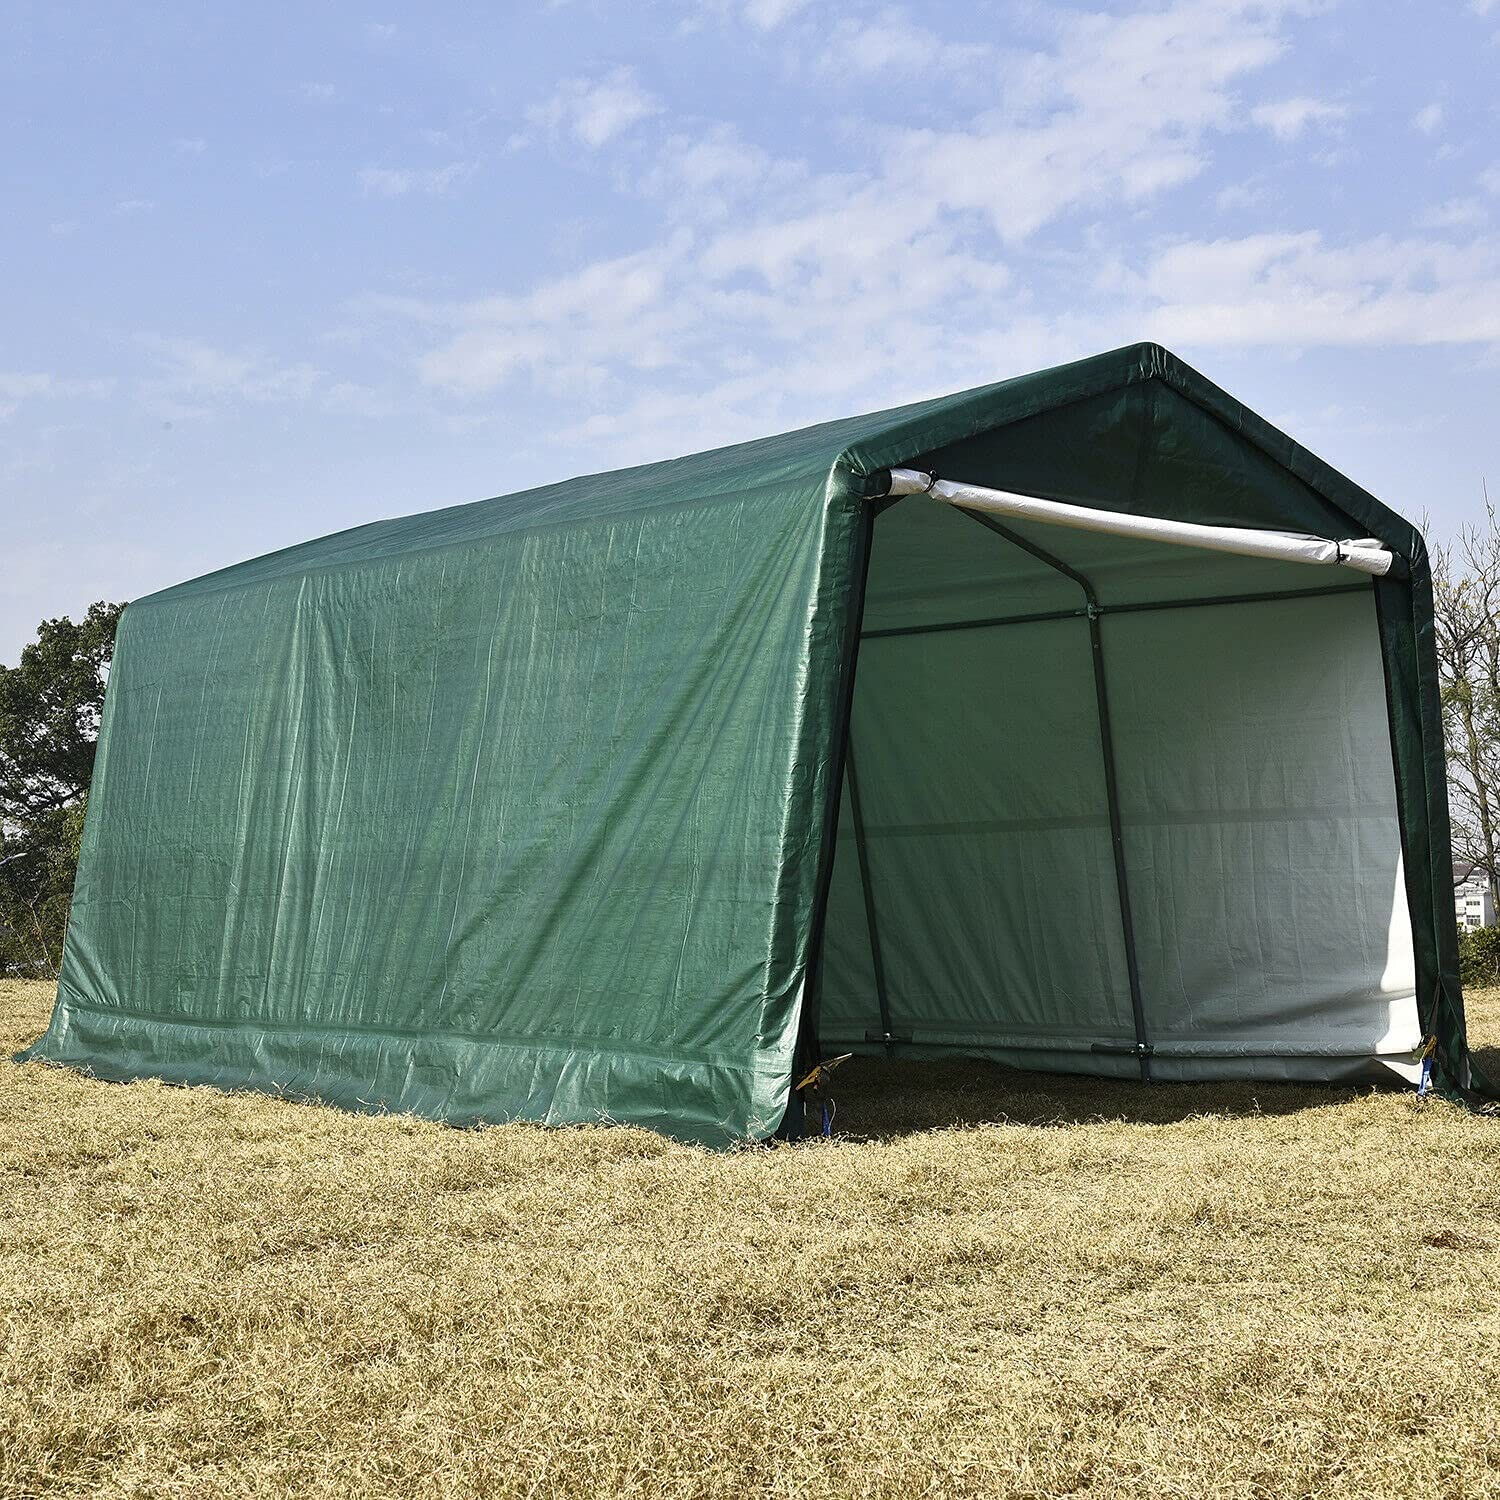 HUIJK Storage Sheds 10x15 FT Ranking Over item handling TOP3 Canopy Carport Outdoo Car Tent Shed